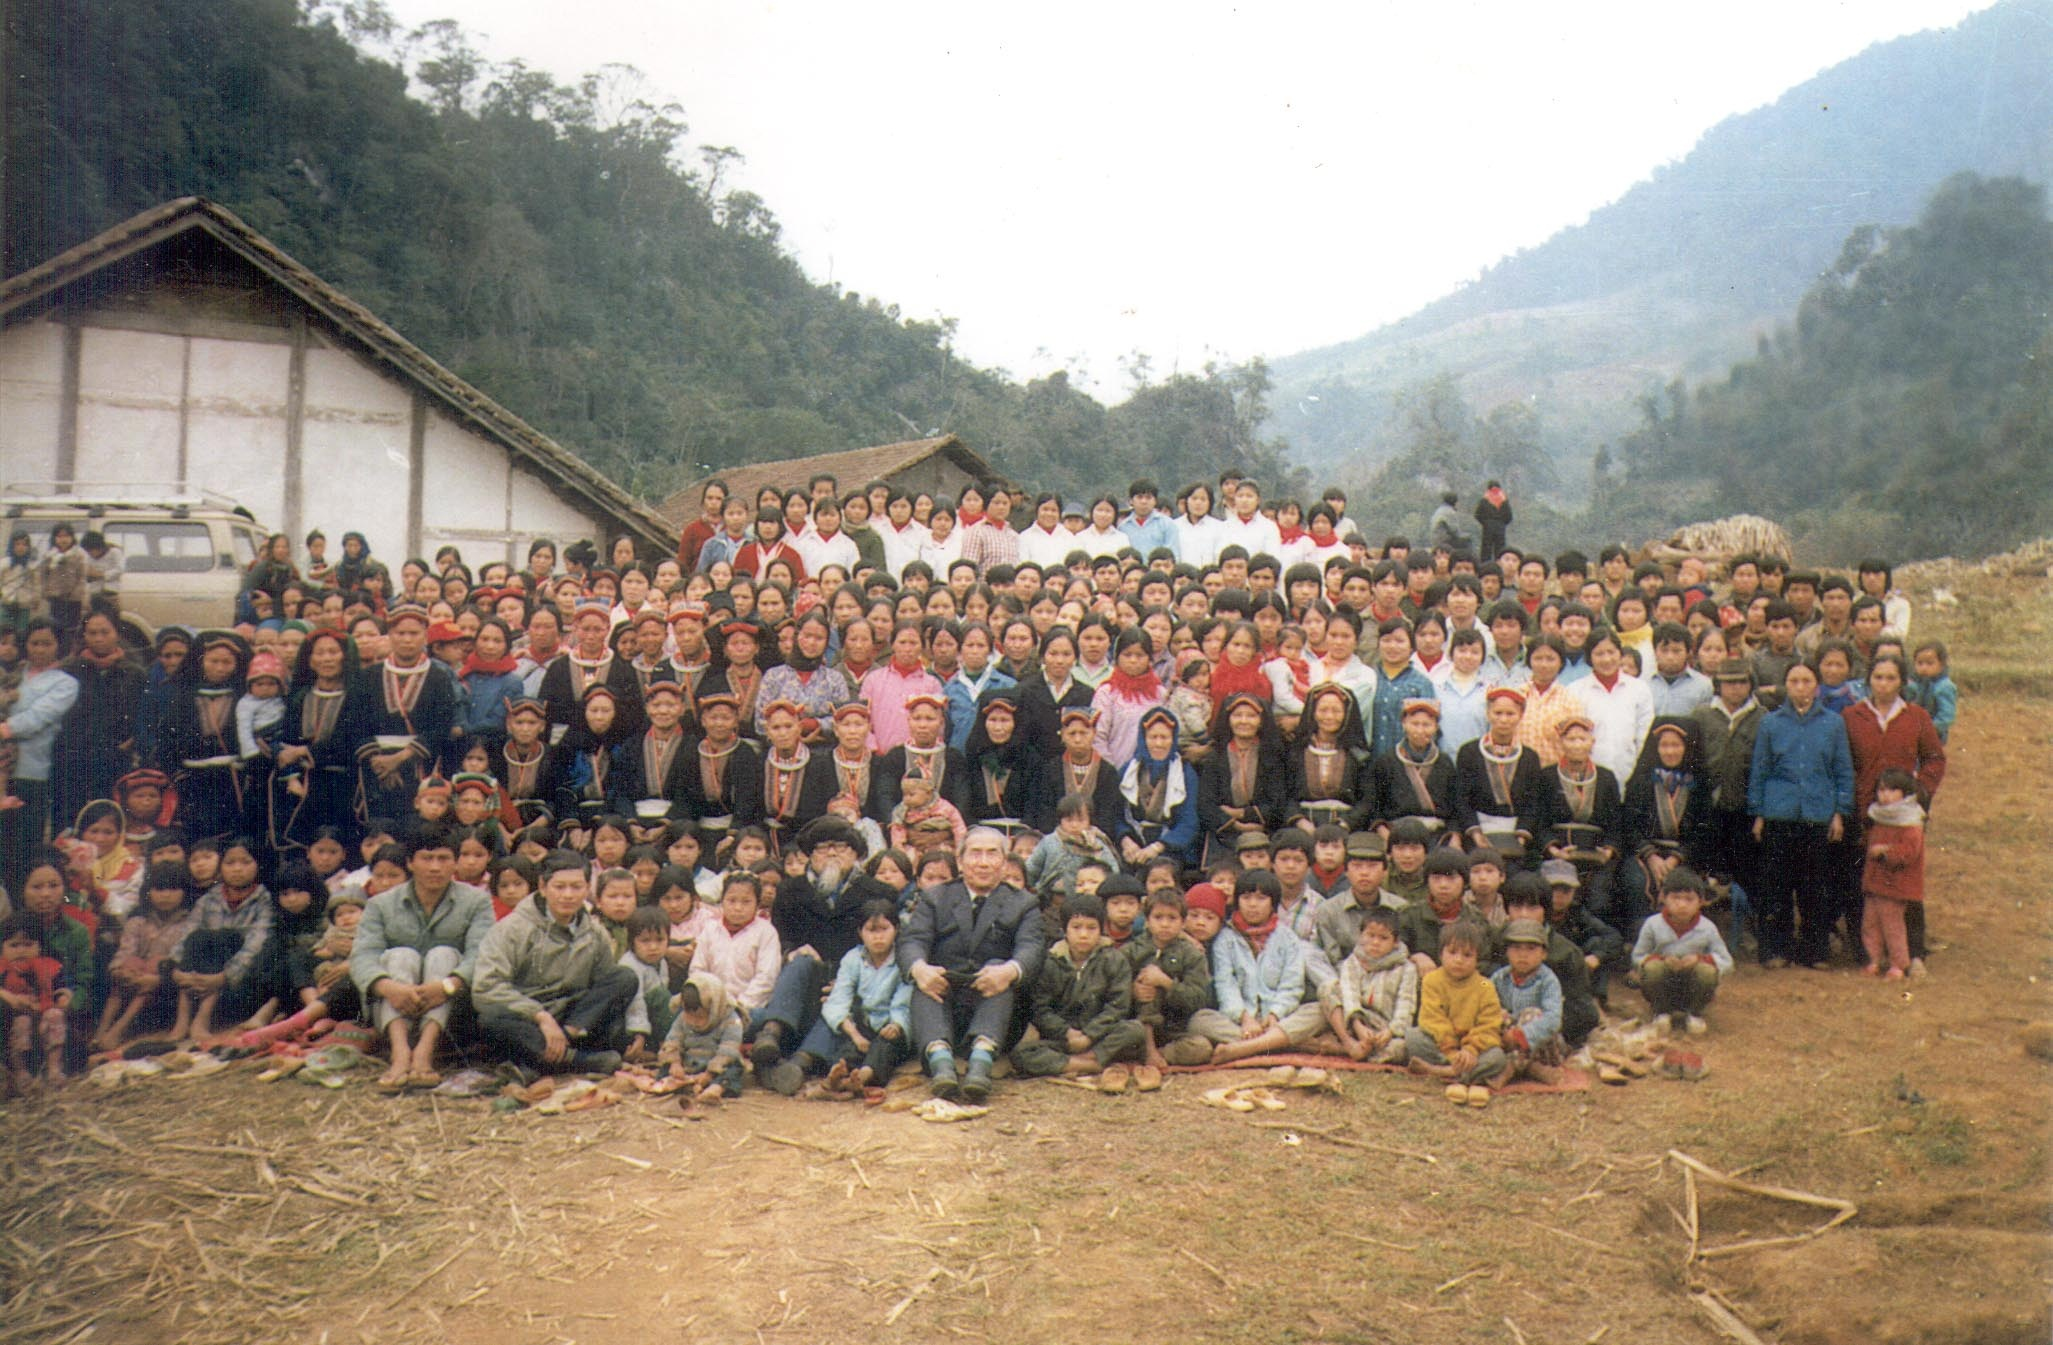 Mien_Christians_gathering_in_Vietnam_in_1994